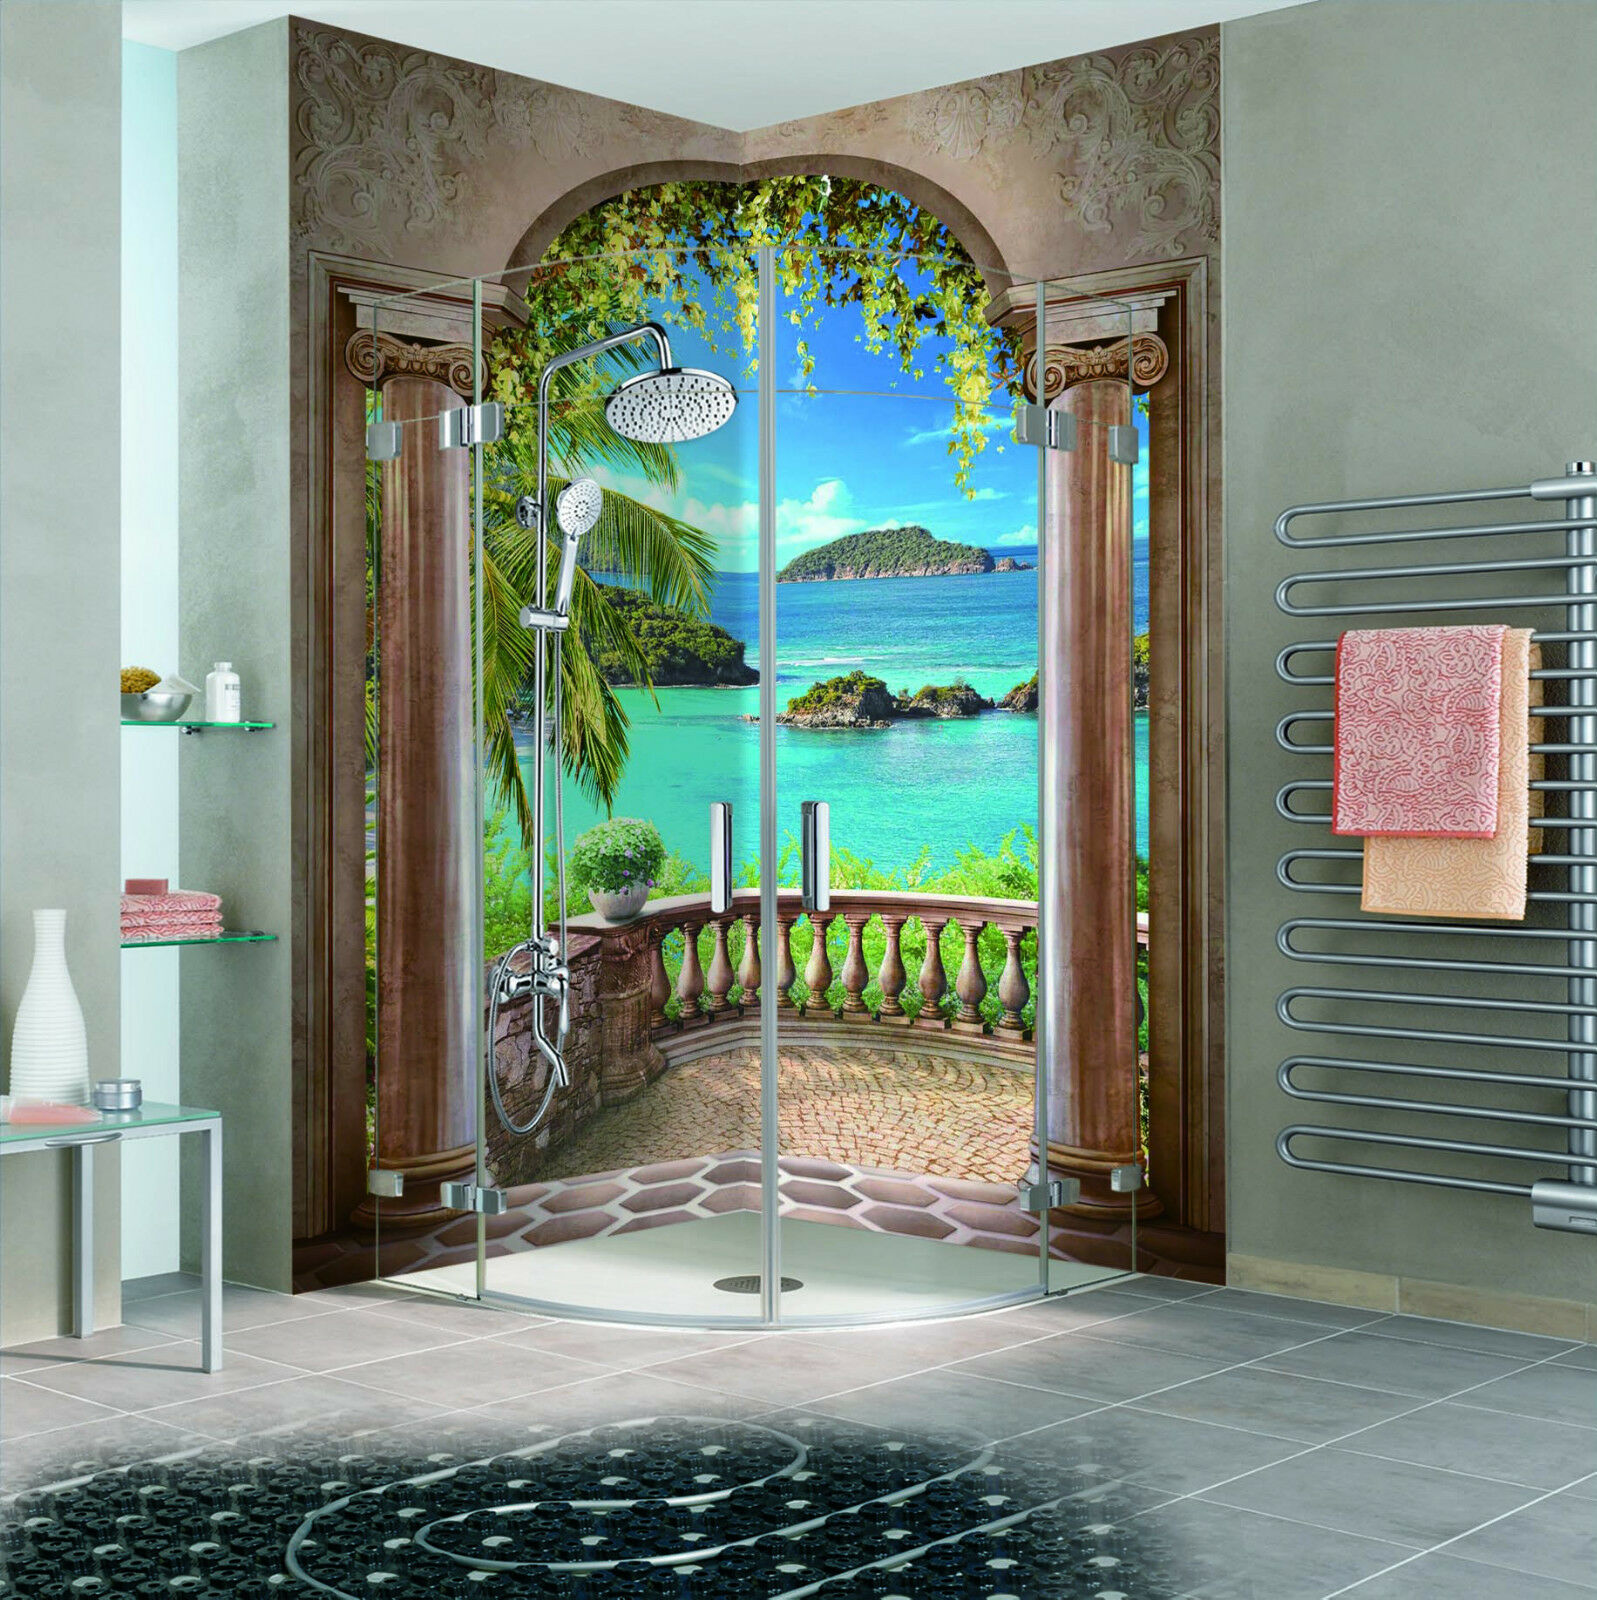 3D Balcony Sea View 133 WallPaper Bathroom Print Decal Wall Deco AJ WALLPAPER CA